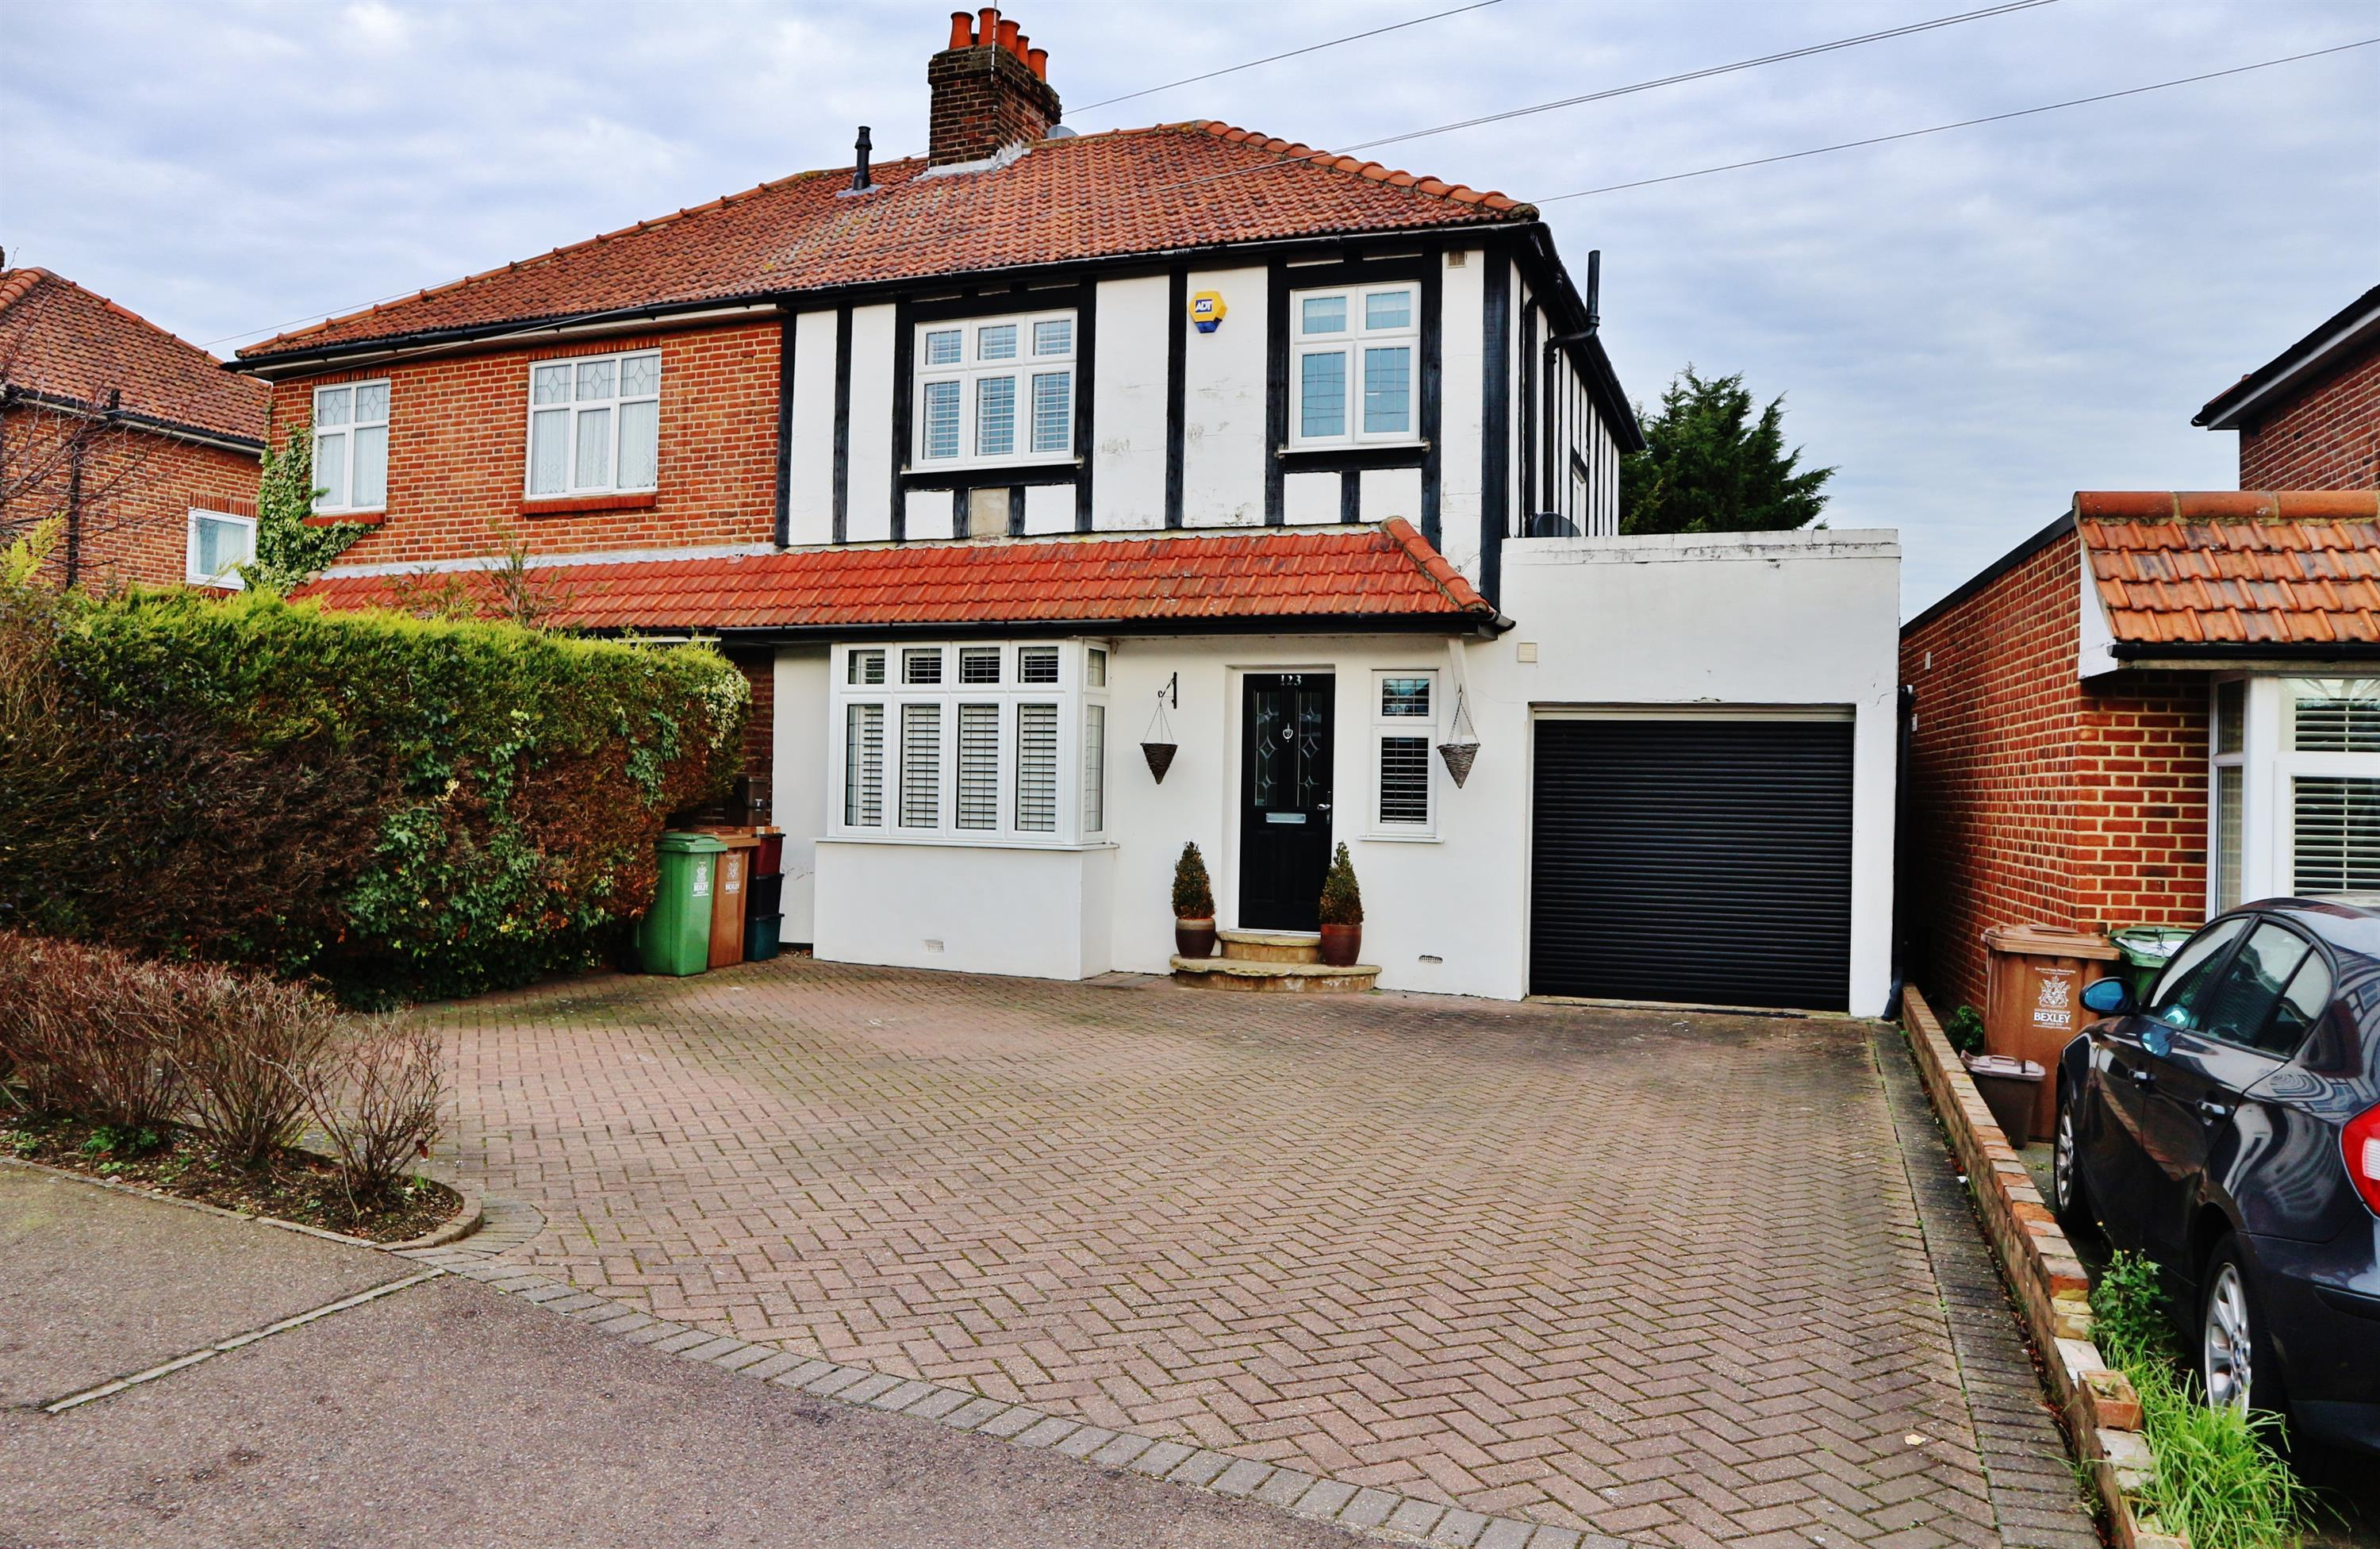 Mayplace Road East  , Bexleyheath, Kent, DA7 6ER